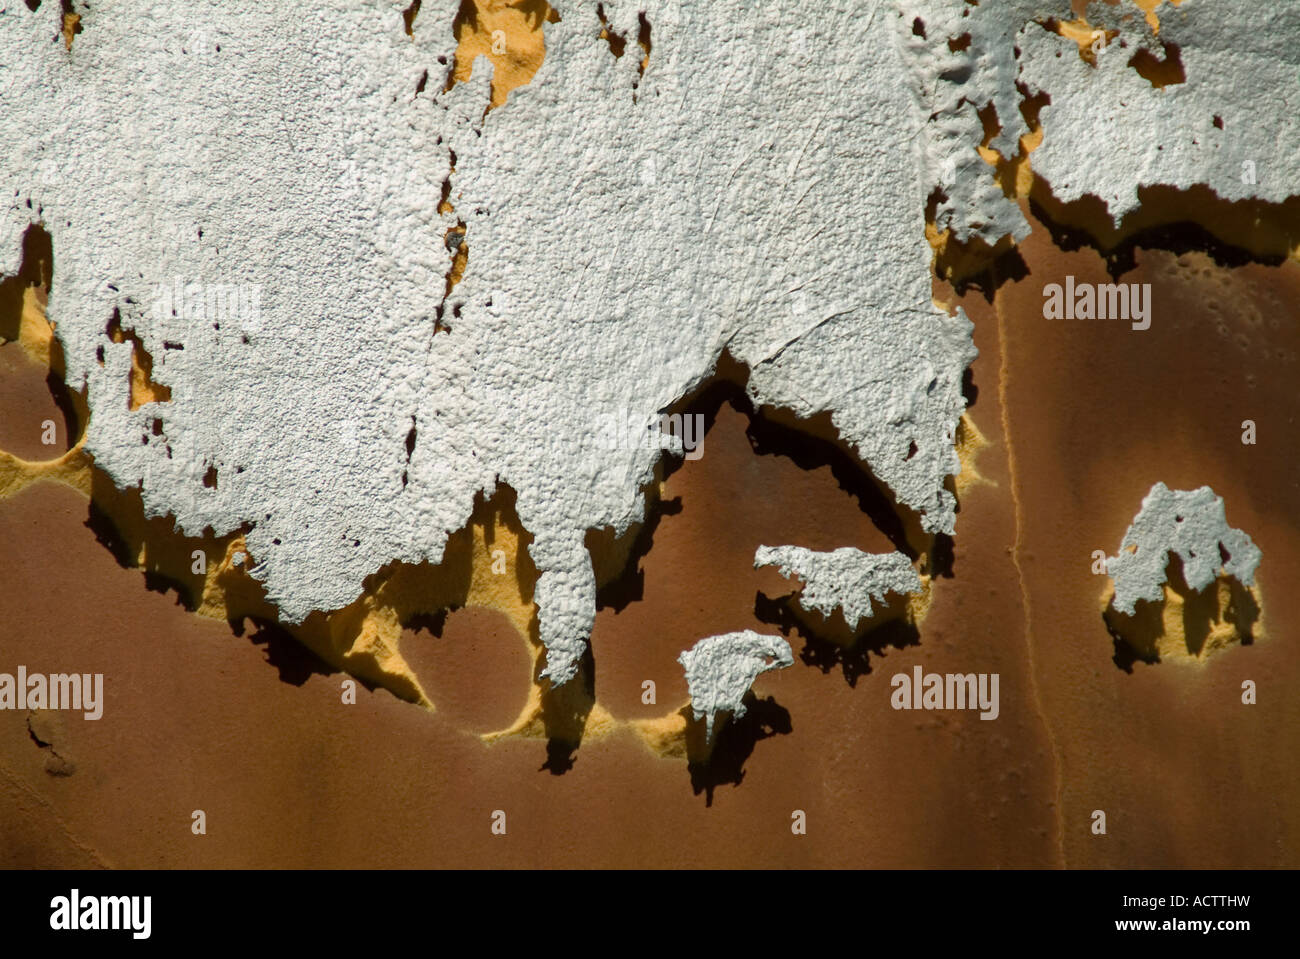 ABSTRACT PHOTO OF BROKEN DOWN INSULATION LOOKING LIKE 3D MAP ... on